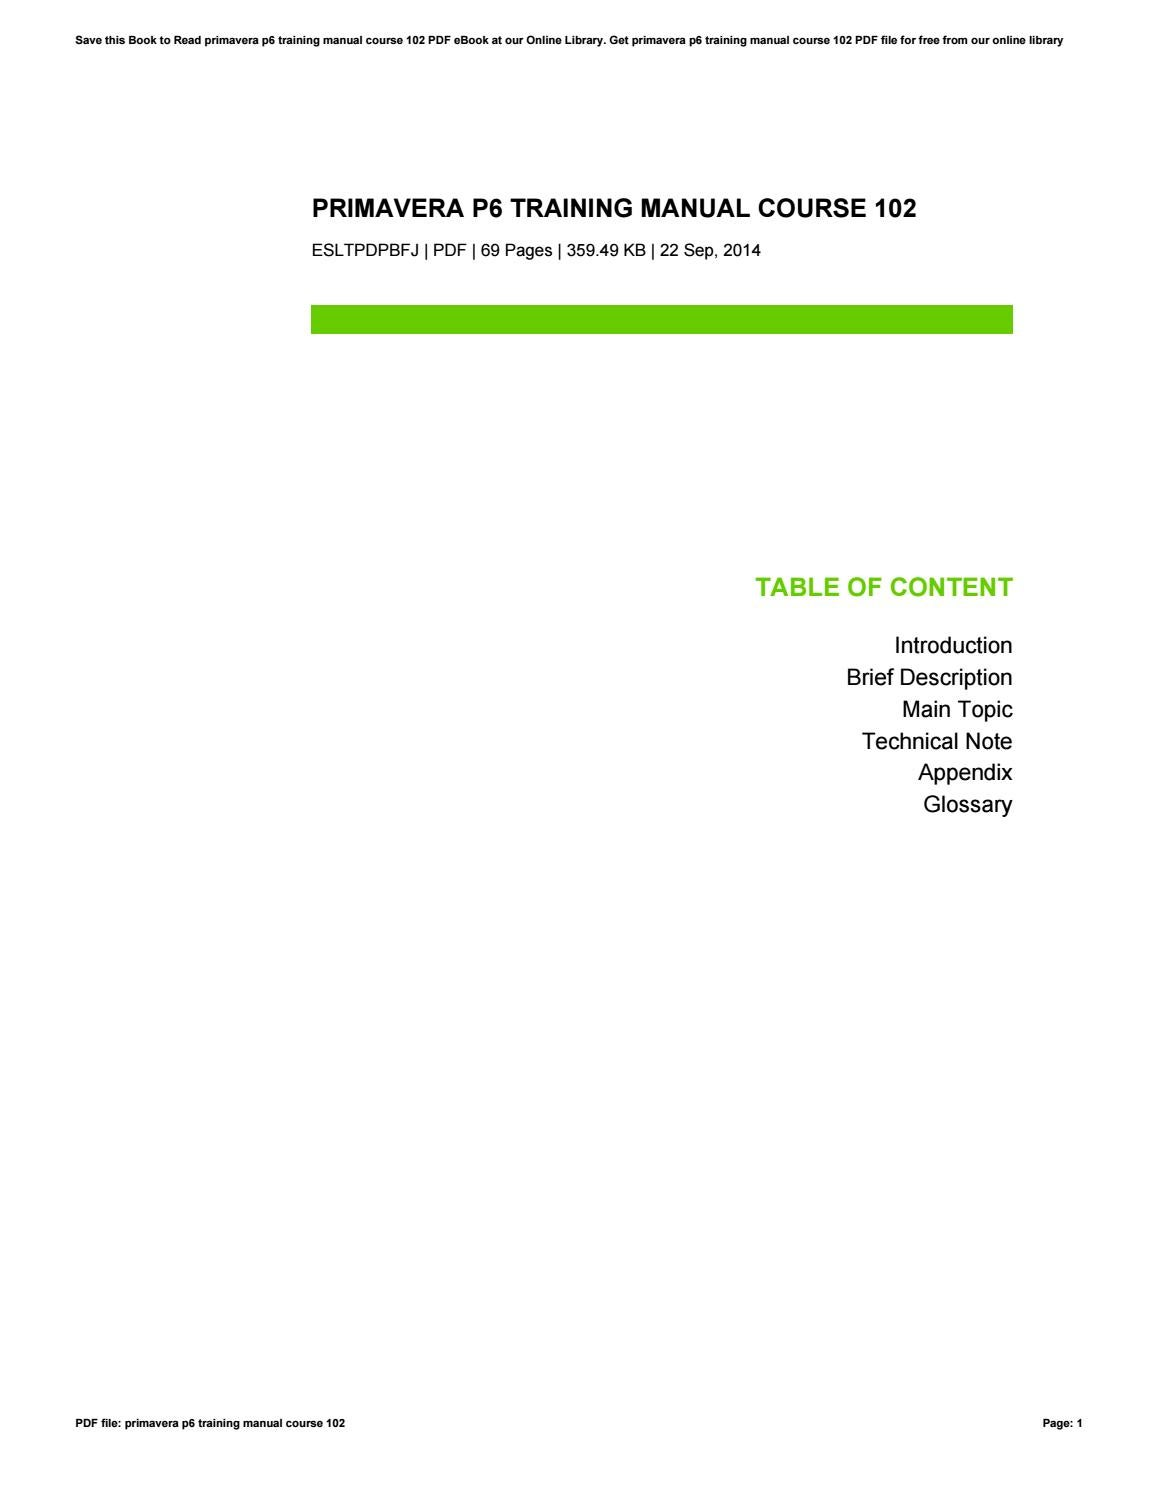 primavera p6 training manual course 102 by jasonotero1722 issuu rh issuu com primavera training manual download primavera training manual download